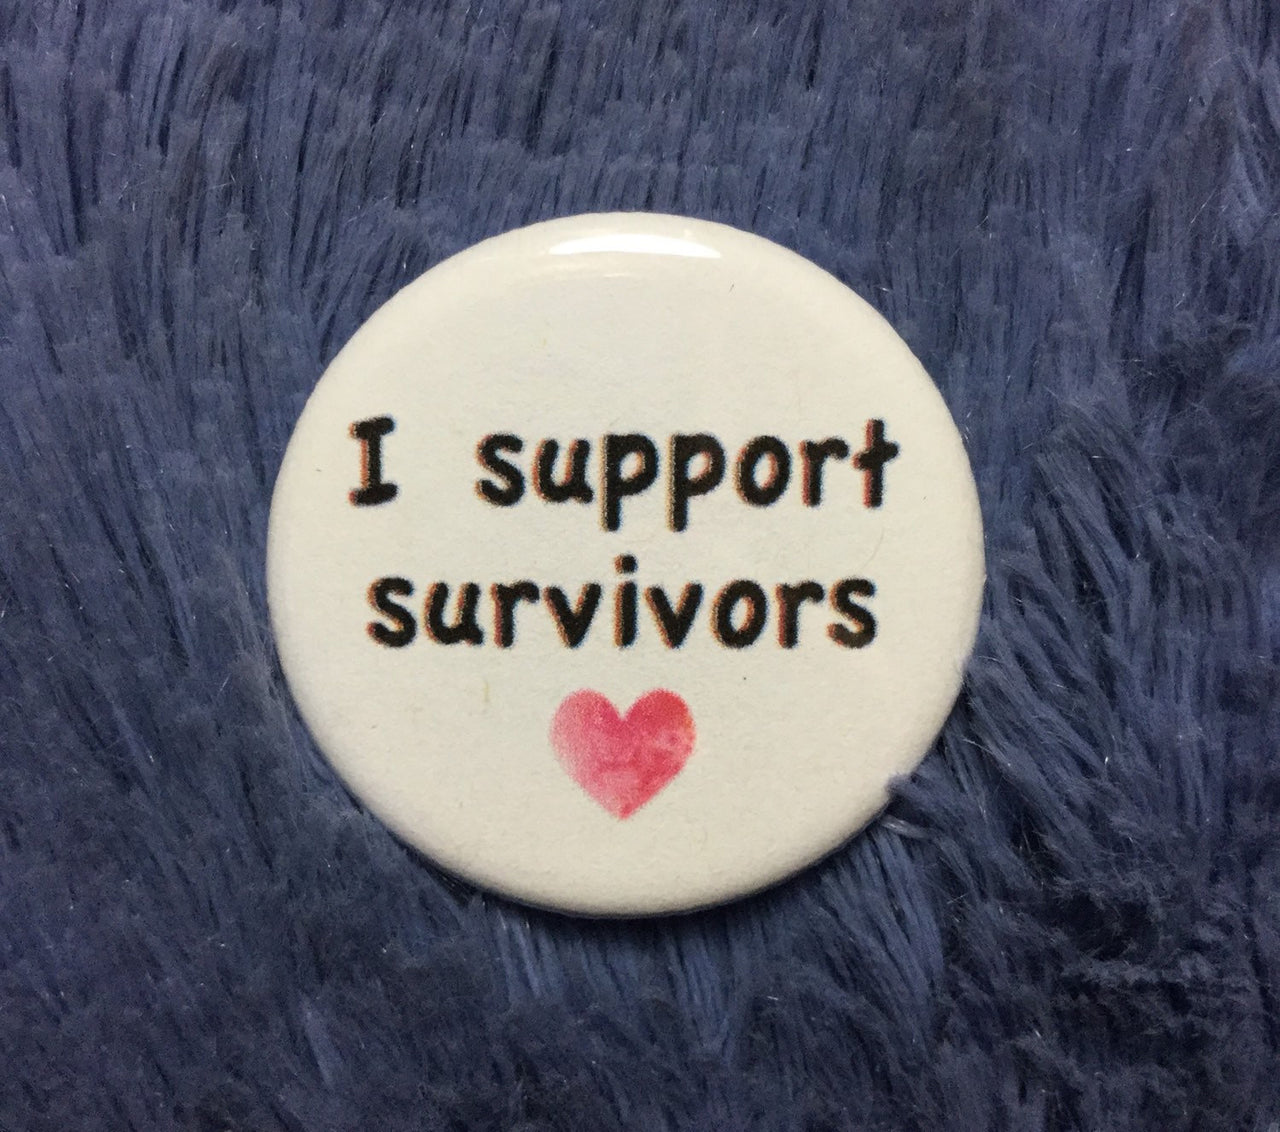 I support survivors - Radical Buttons